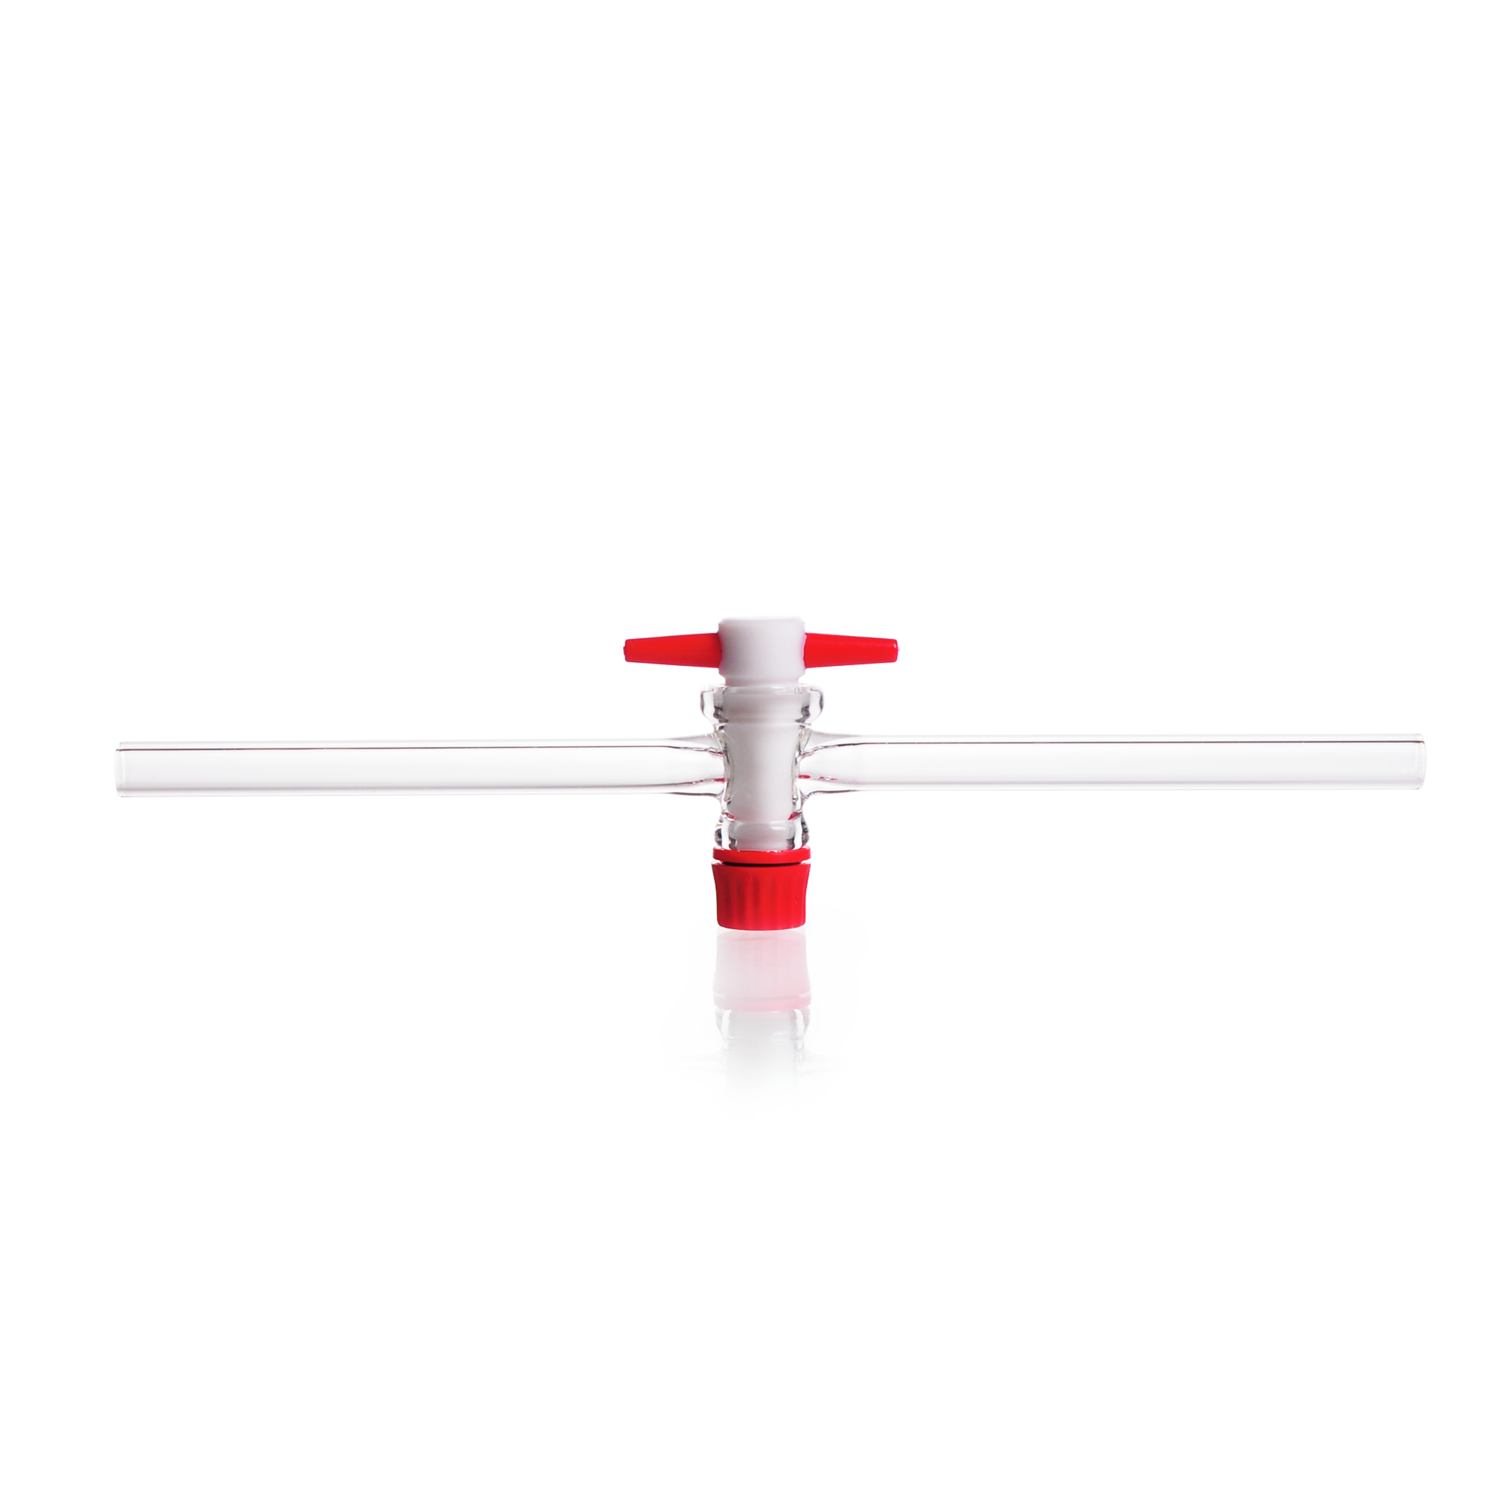 DURAN® Single-way Stopcock, taper 1:5, polished, with PTFE key, bore 8 mm, NS 28